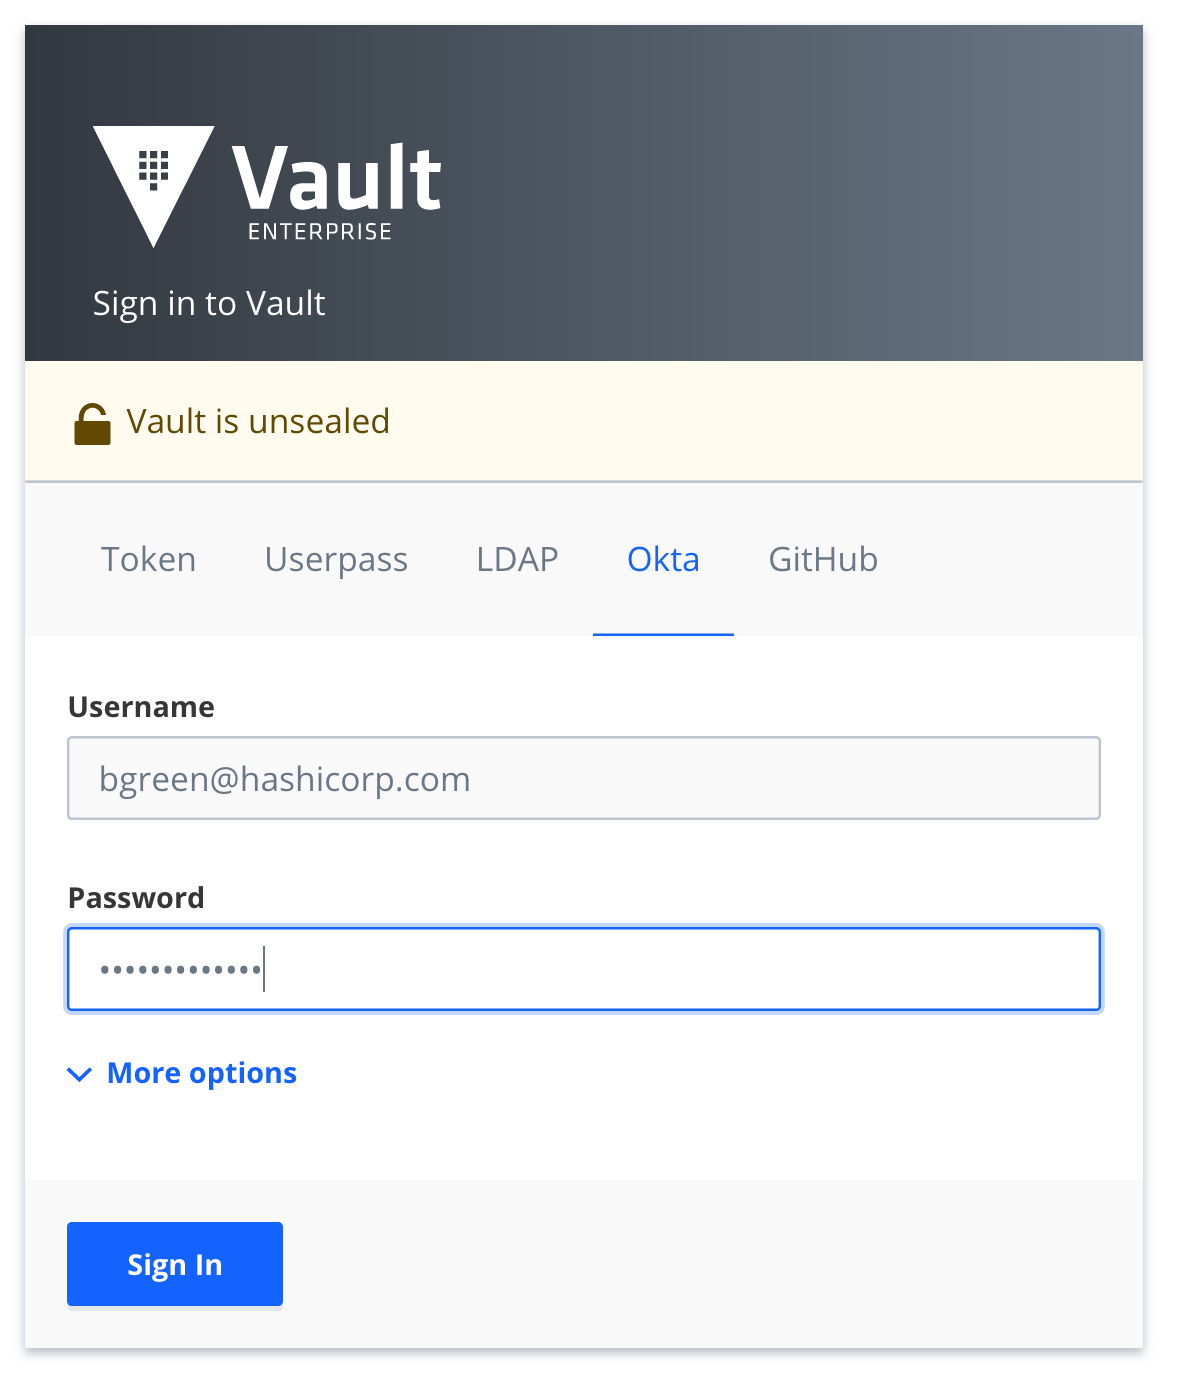 vault-guides/README md at master · hashicorp/vault-guides